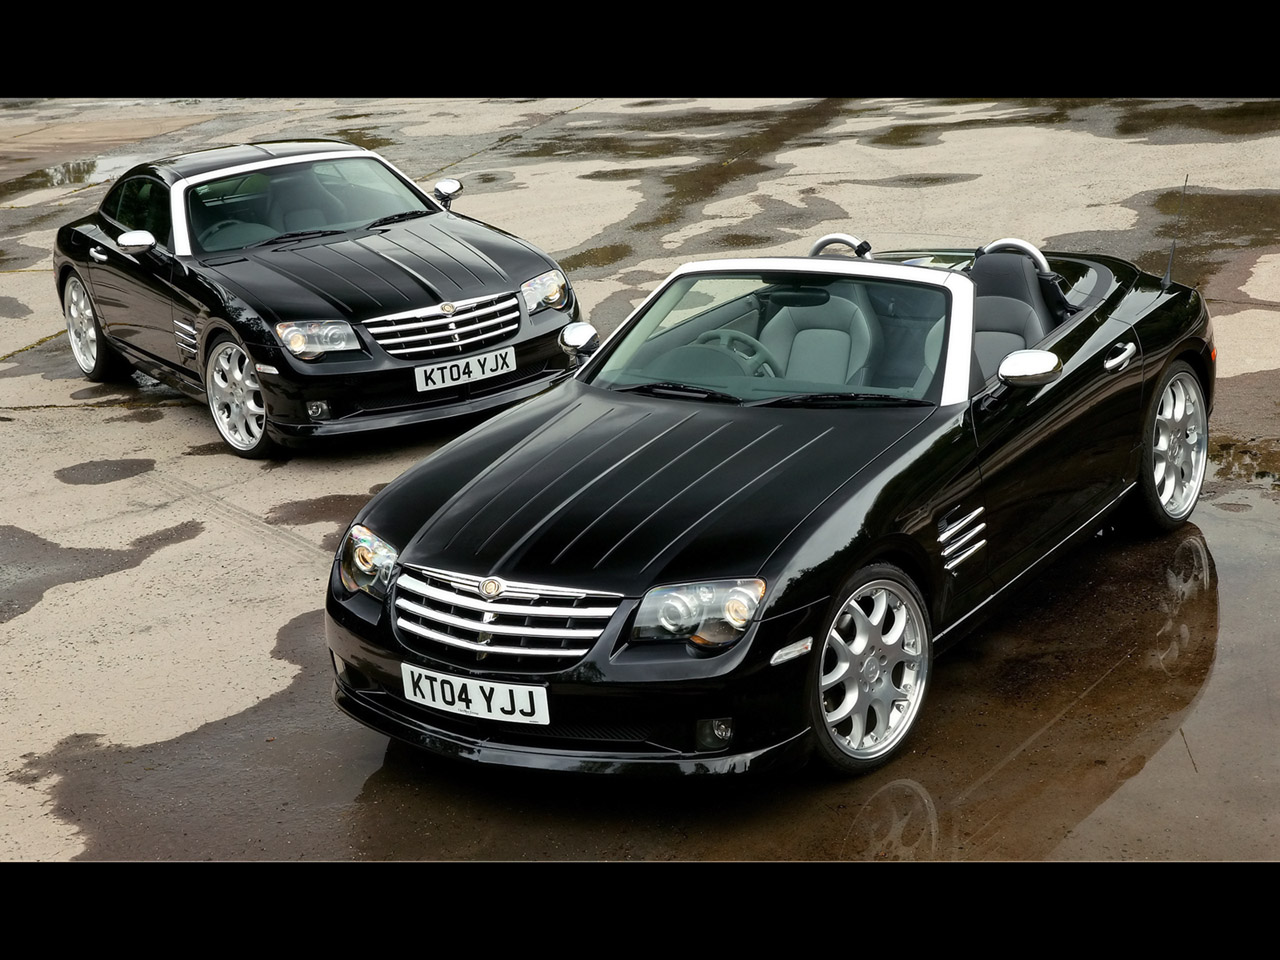 chrysler crossfire cabrio photos news reviews specs car listings. Black Bedroom Furniture Sets. Home Design Ideas